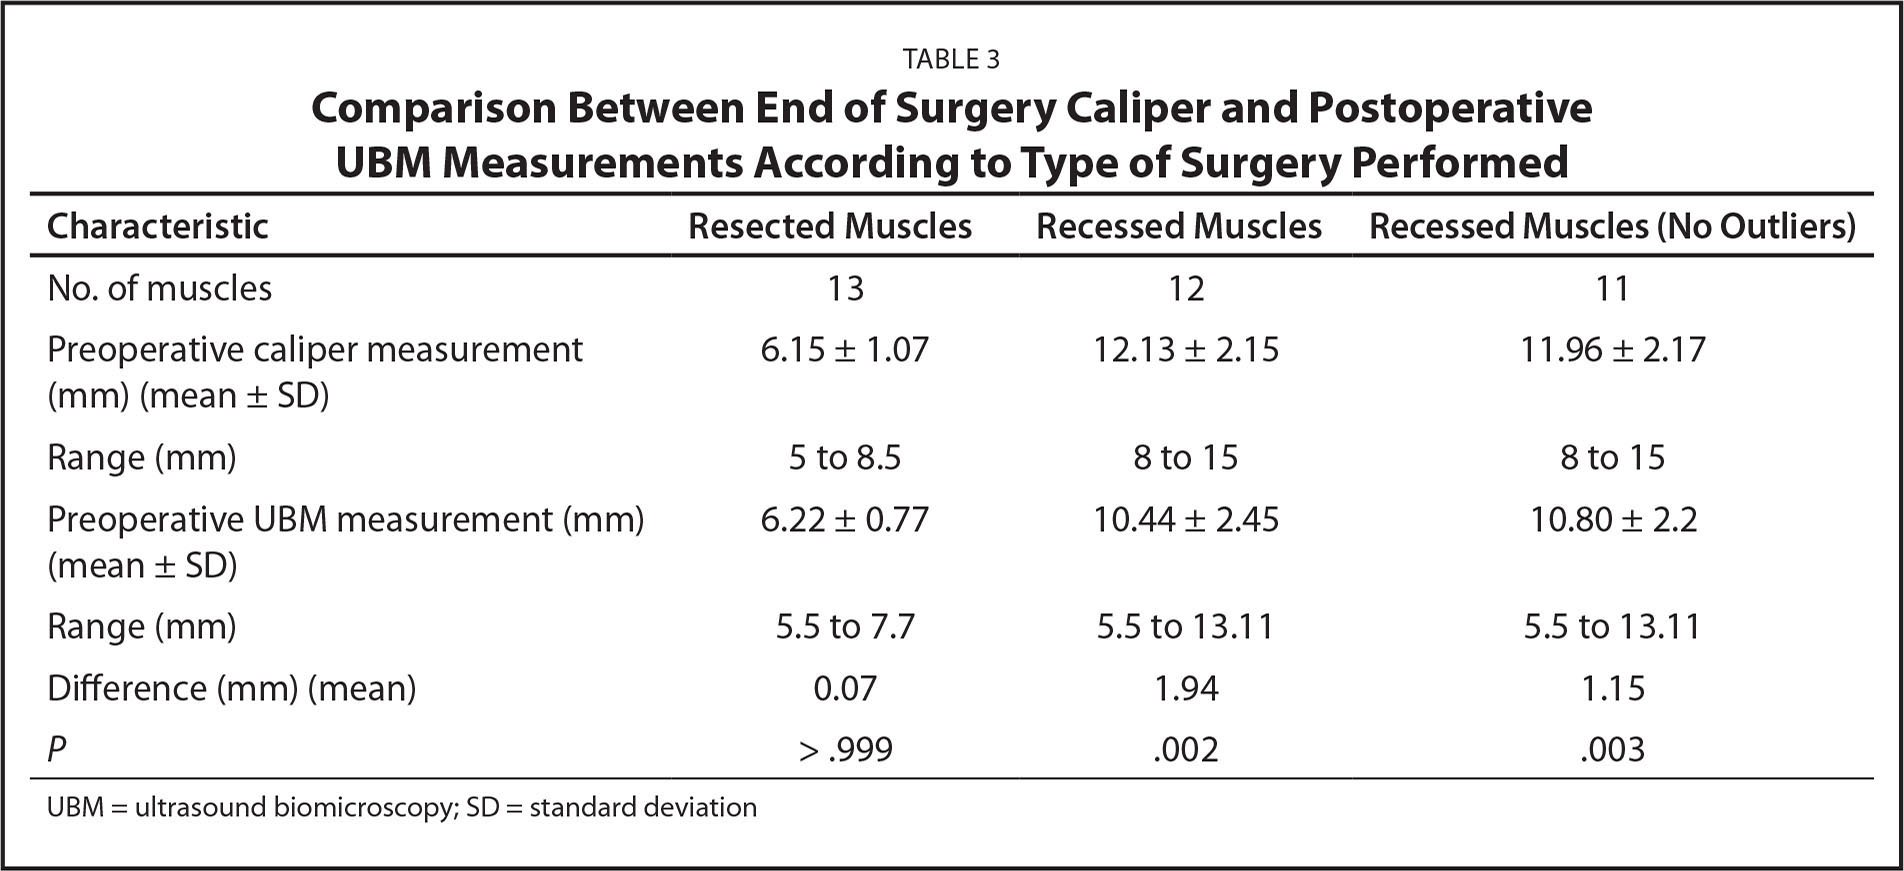 Comparison Between End of Surgery Caliper and Postoperative UBM Measurements According to Type of Surgery Performed